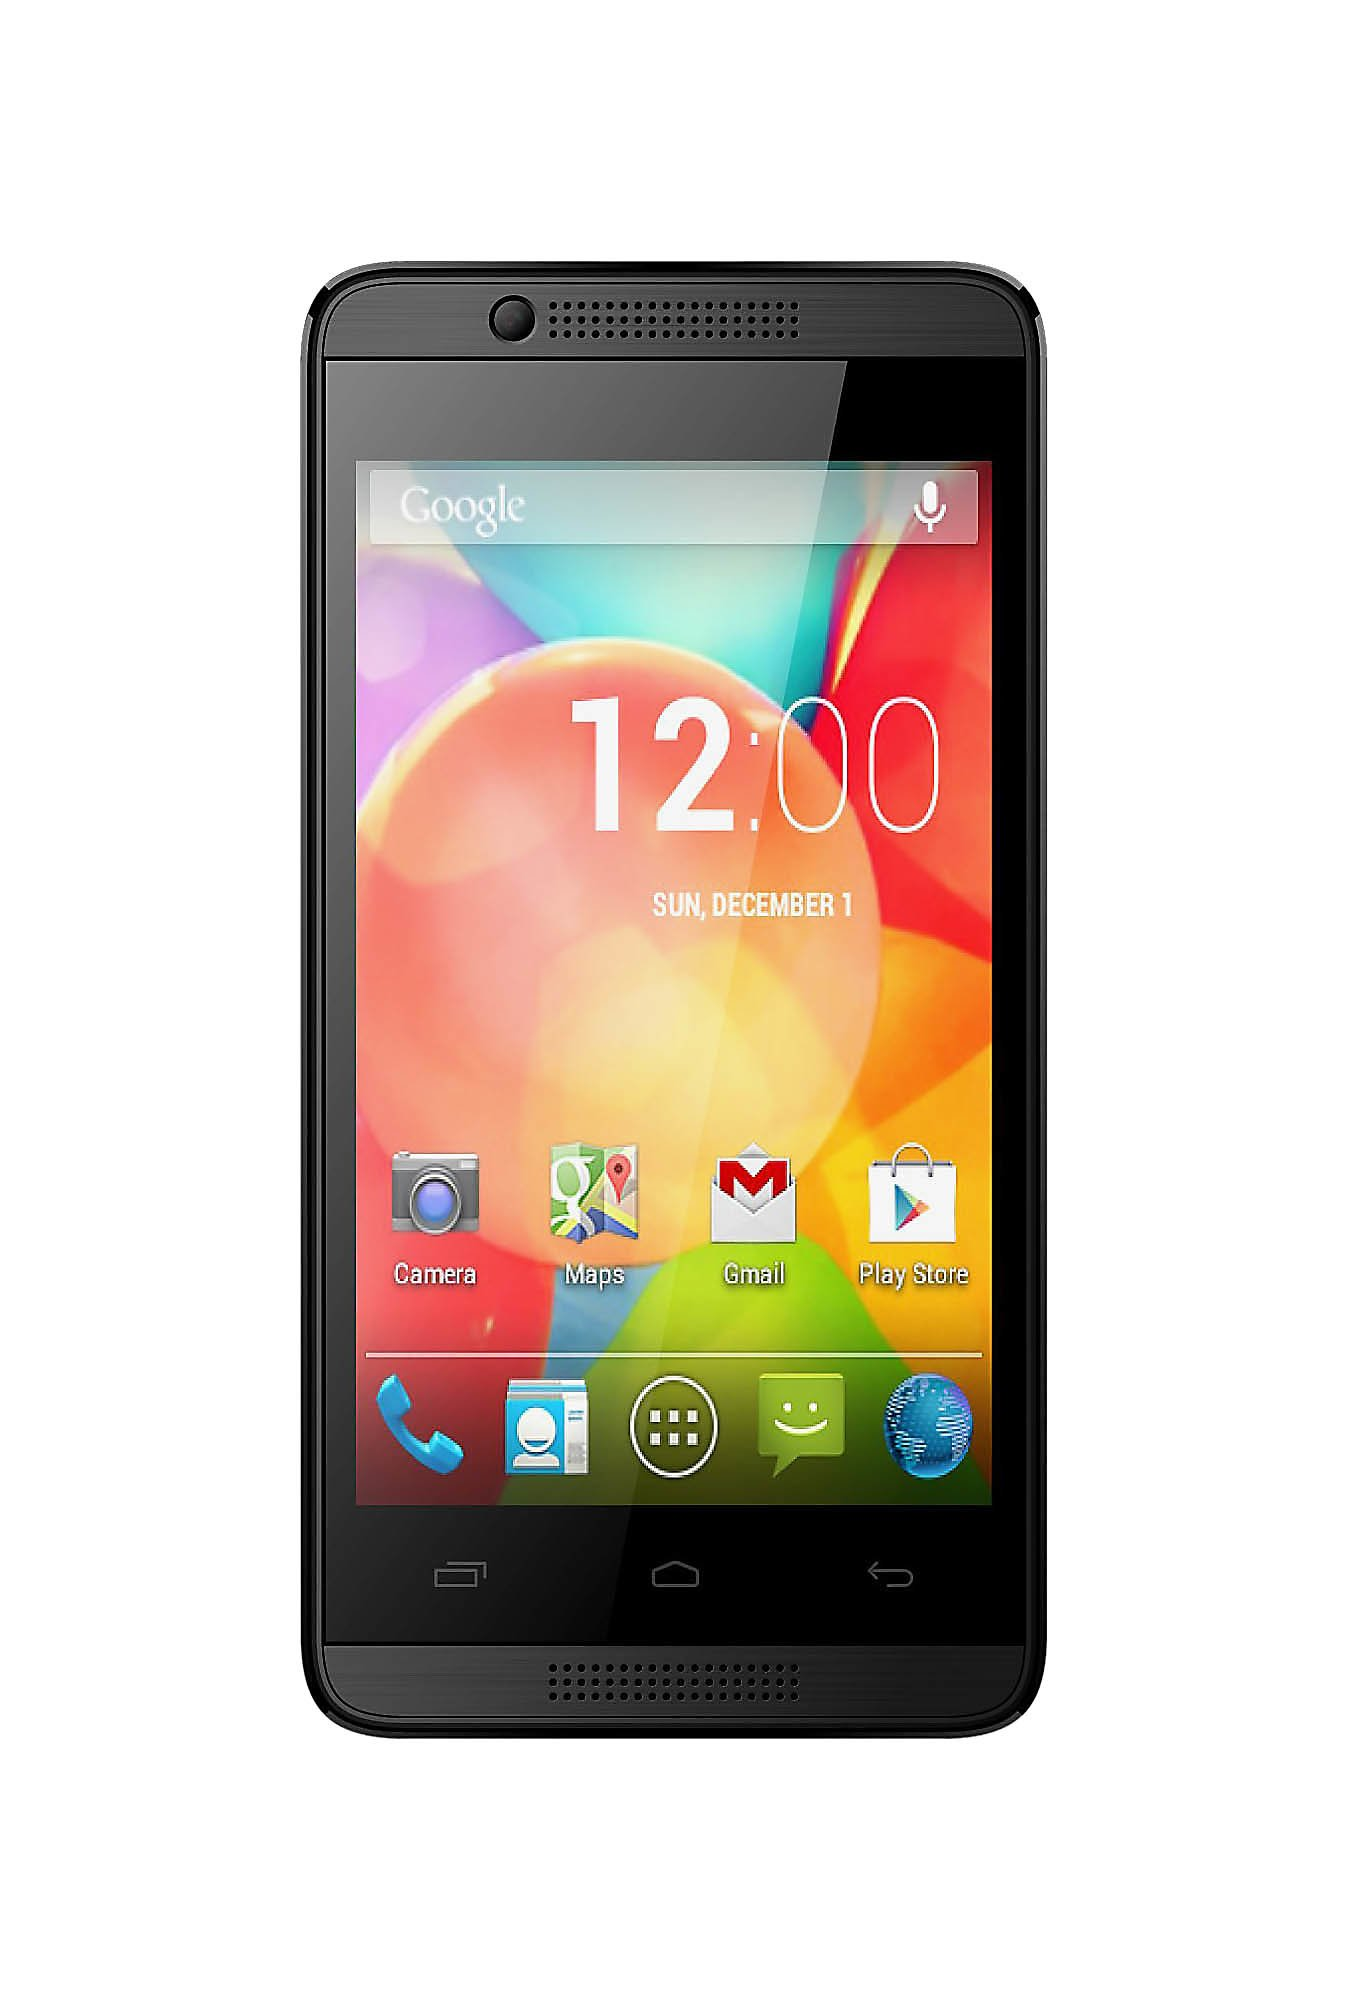 Intex Cloud Gem 4 GB (Black) 512 MB RAM, Dual SIM 3G